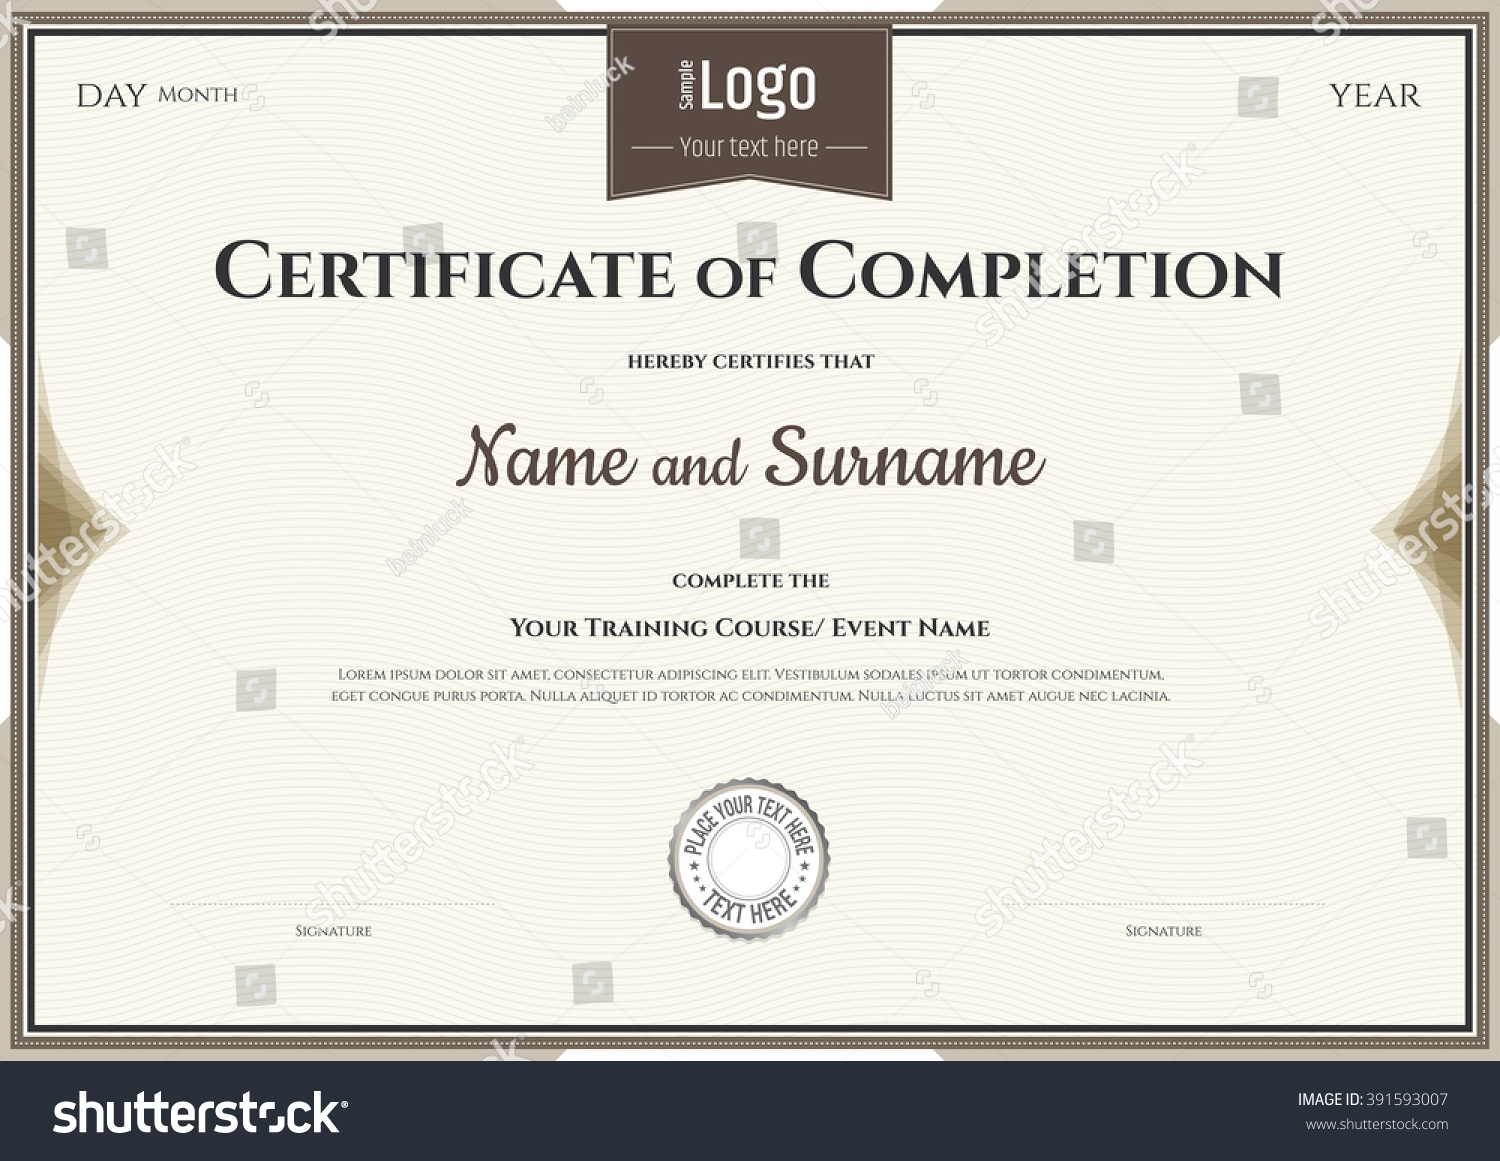 Certificate completion template vector achievement graduation certificate of completion template in vector for achievement graduation xflitez Image collections